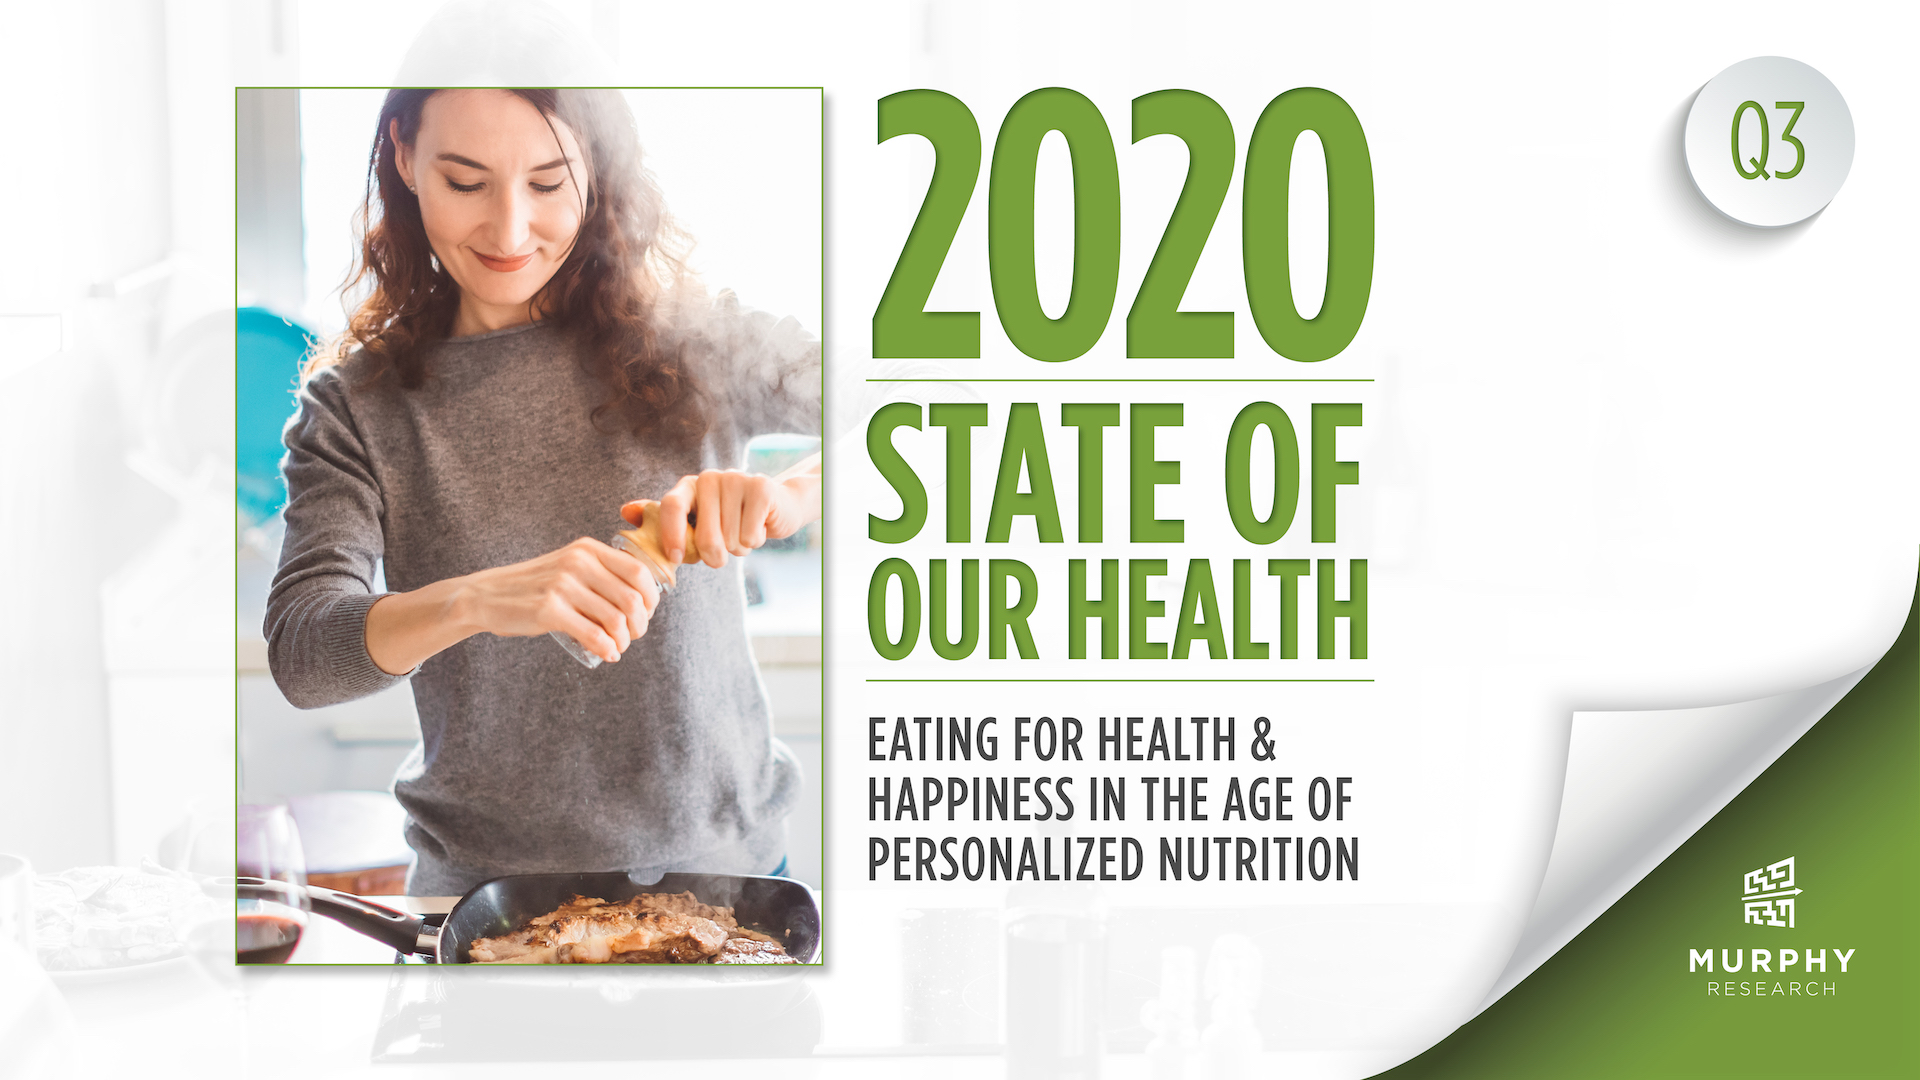 Eating for Health and Happiness in the Age of Personalized Nutrition